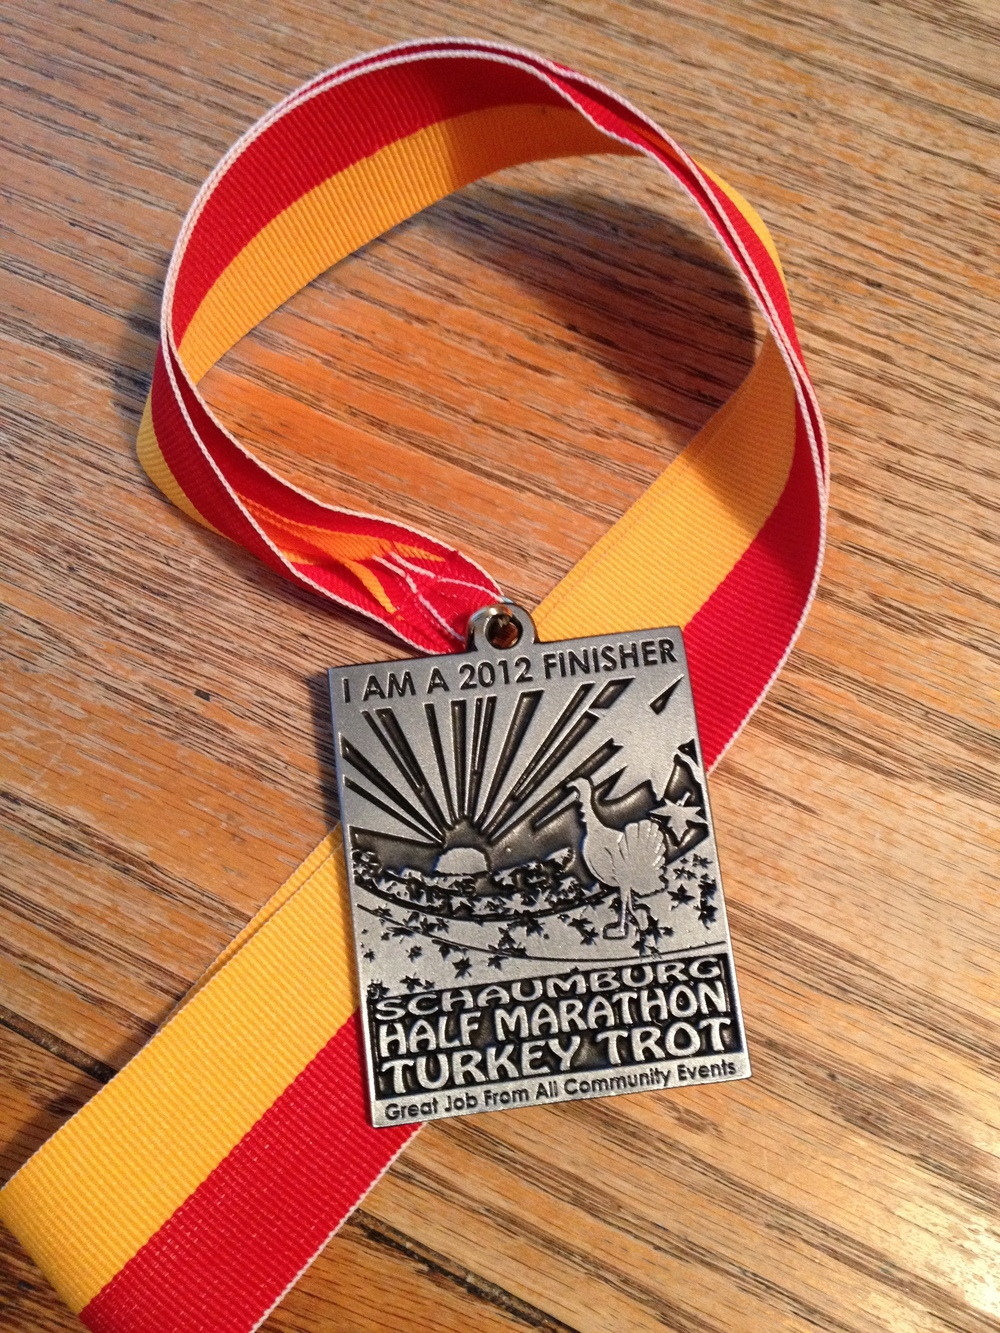 Awesome Finisher's medal